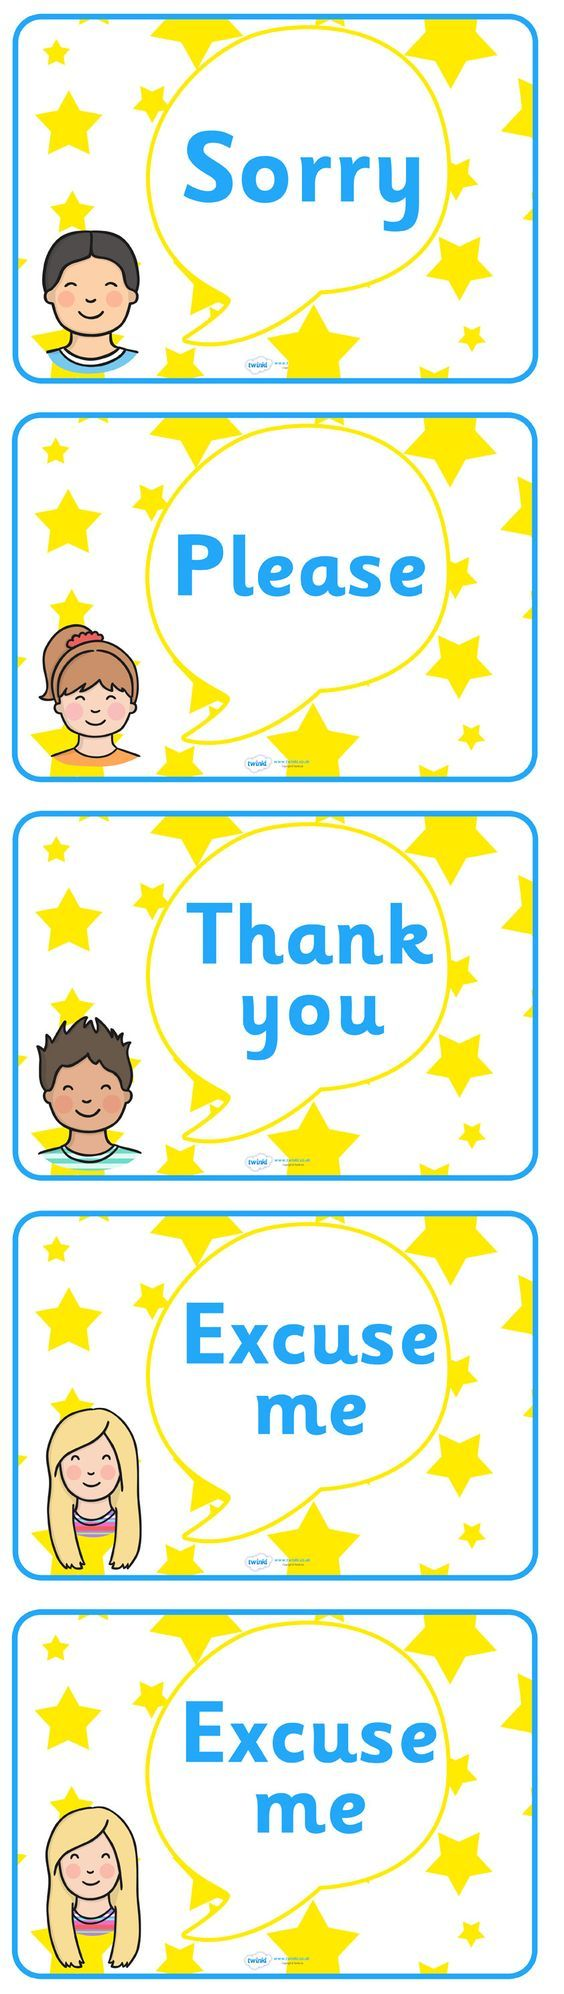 Uncategorized Good Manners Worksheets the 25 best manners ideas on pinterest teaching kids and parents